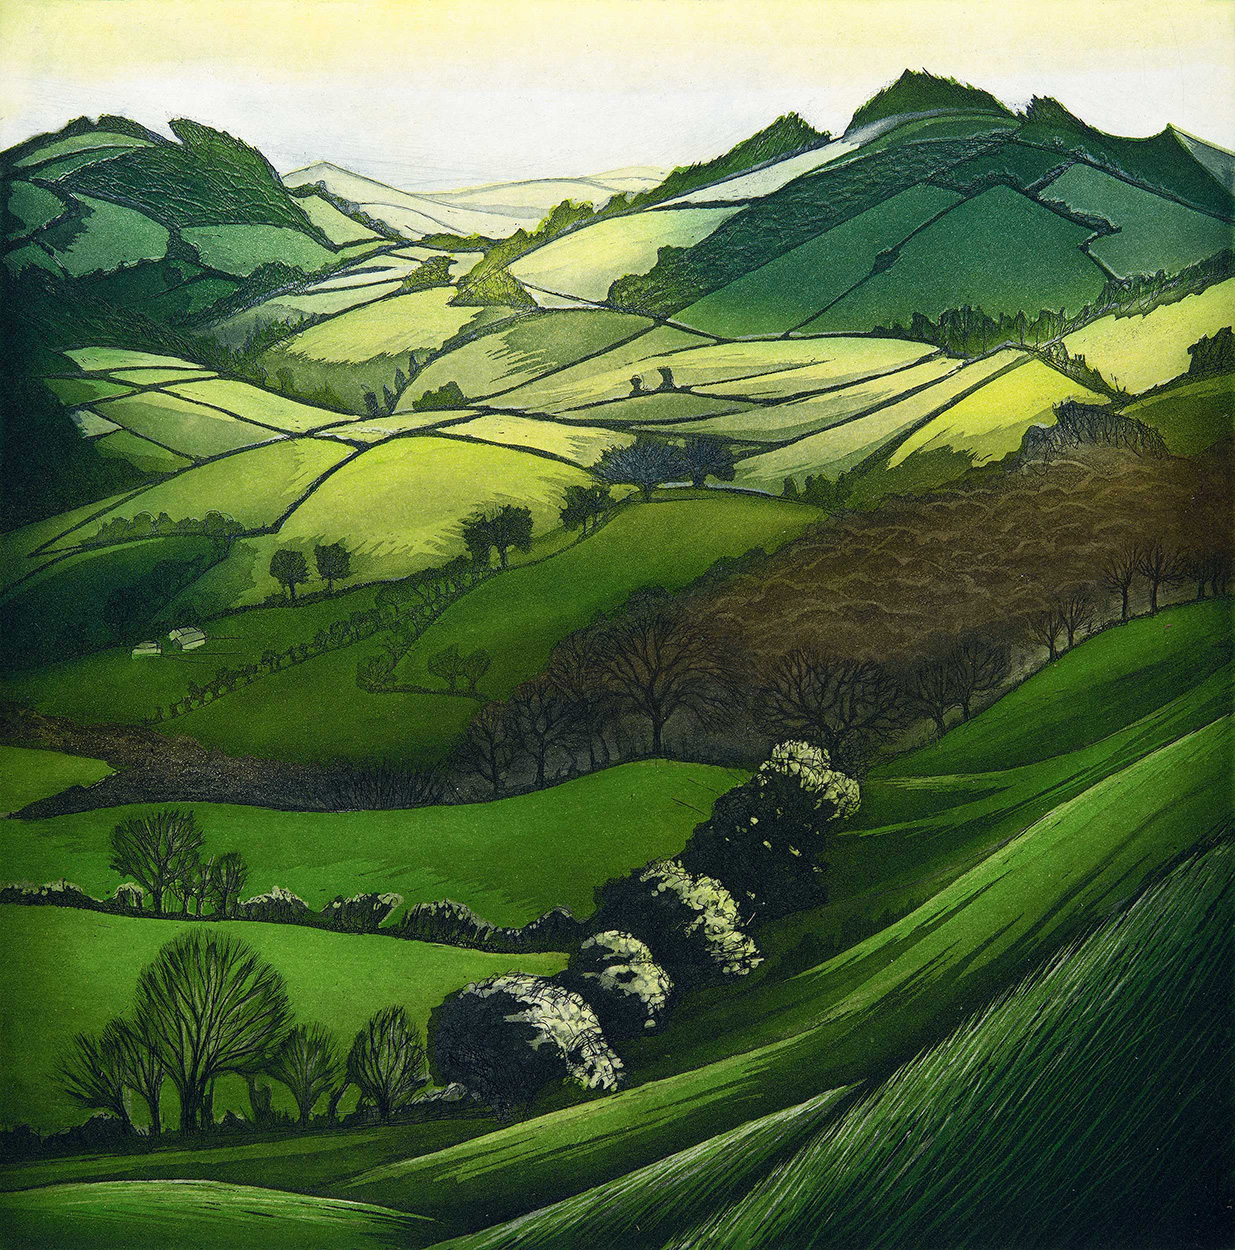 'The Dancing Hills' by Morna Rhys